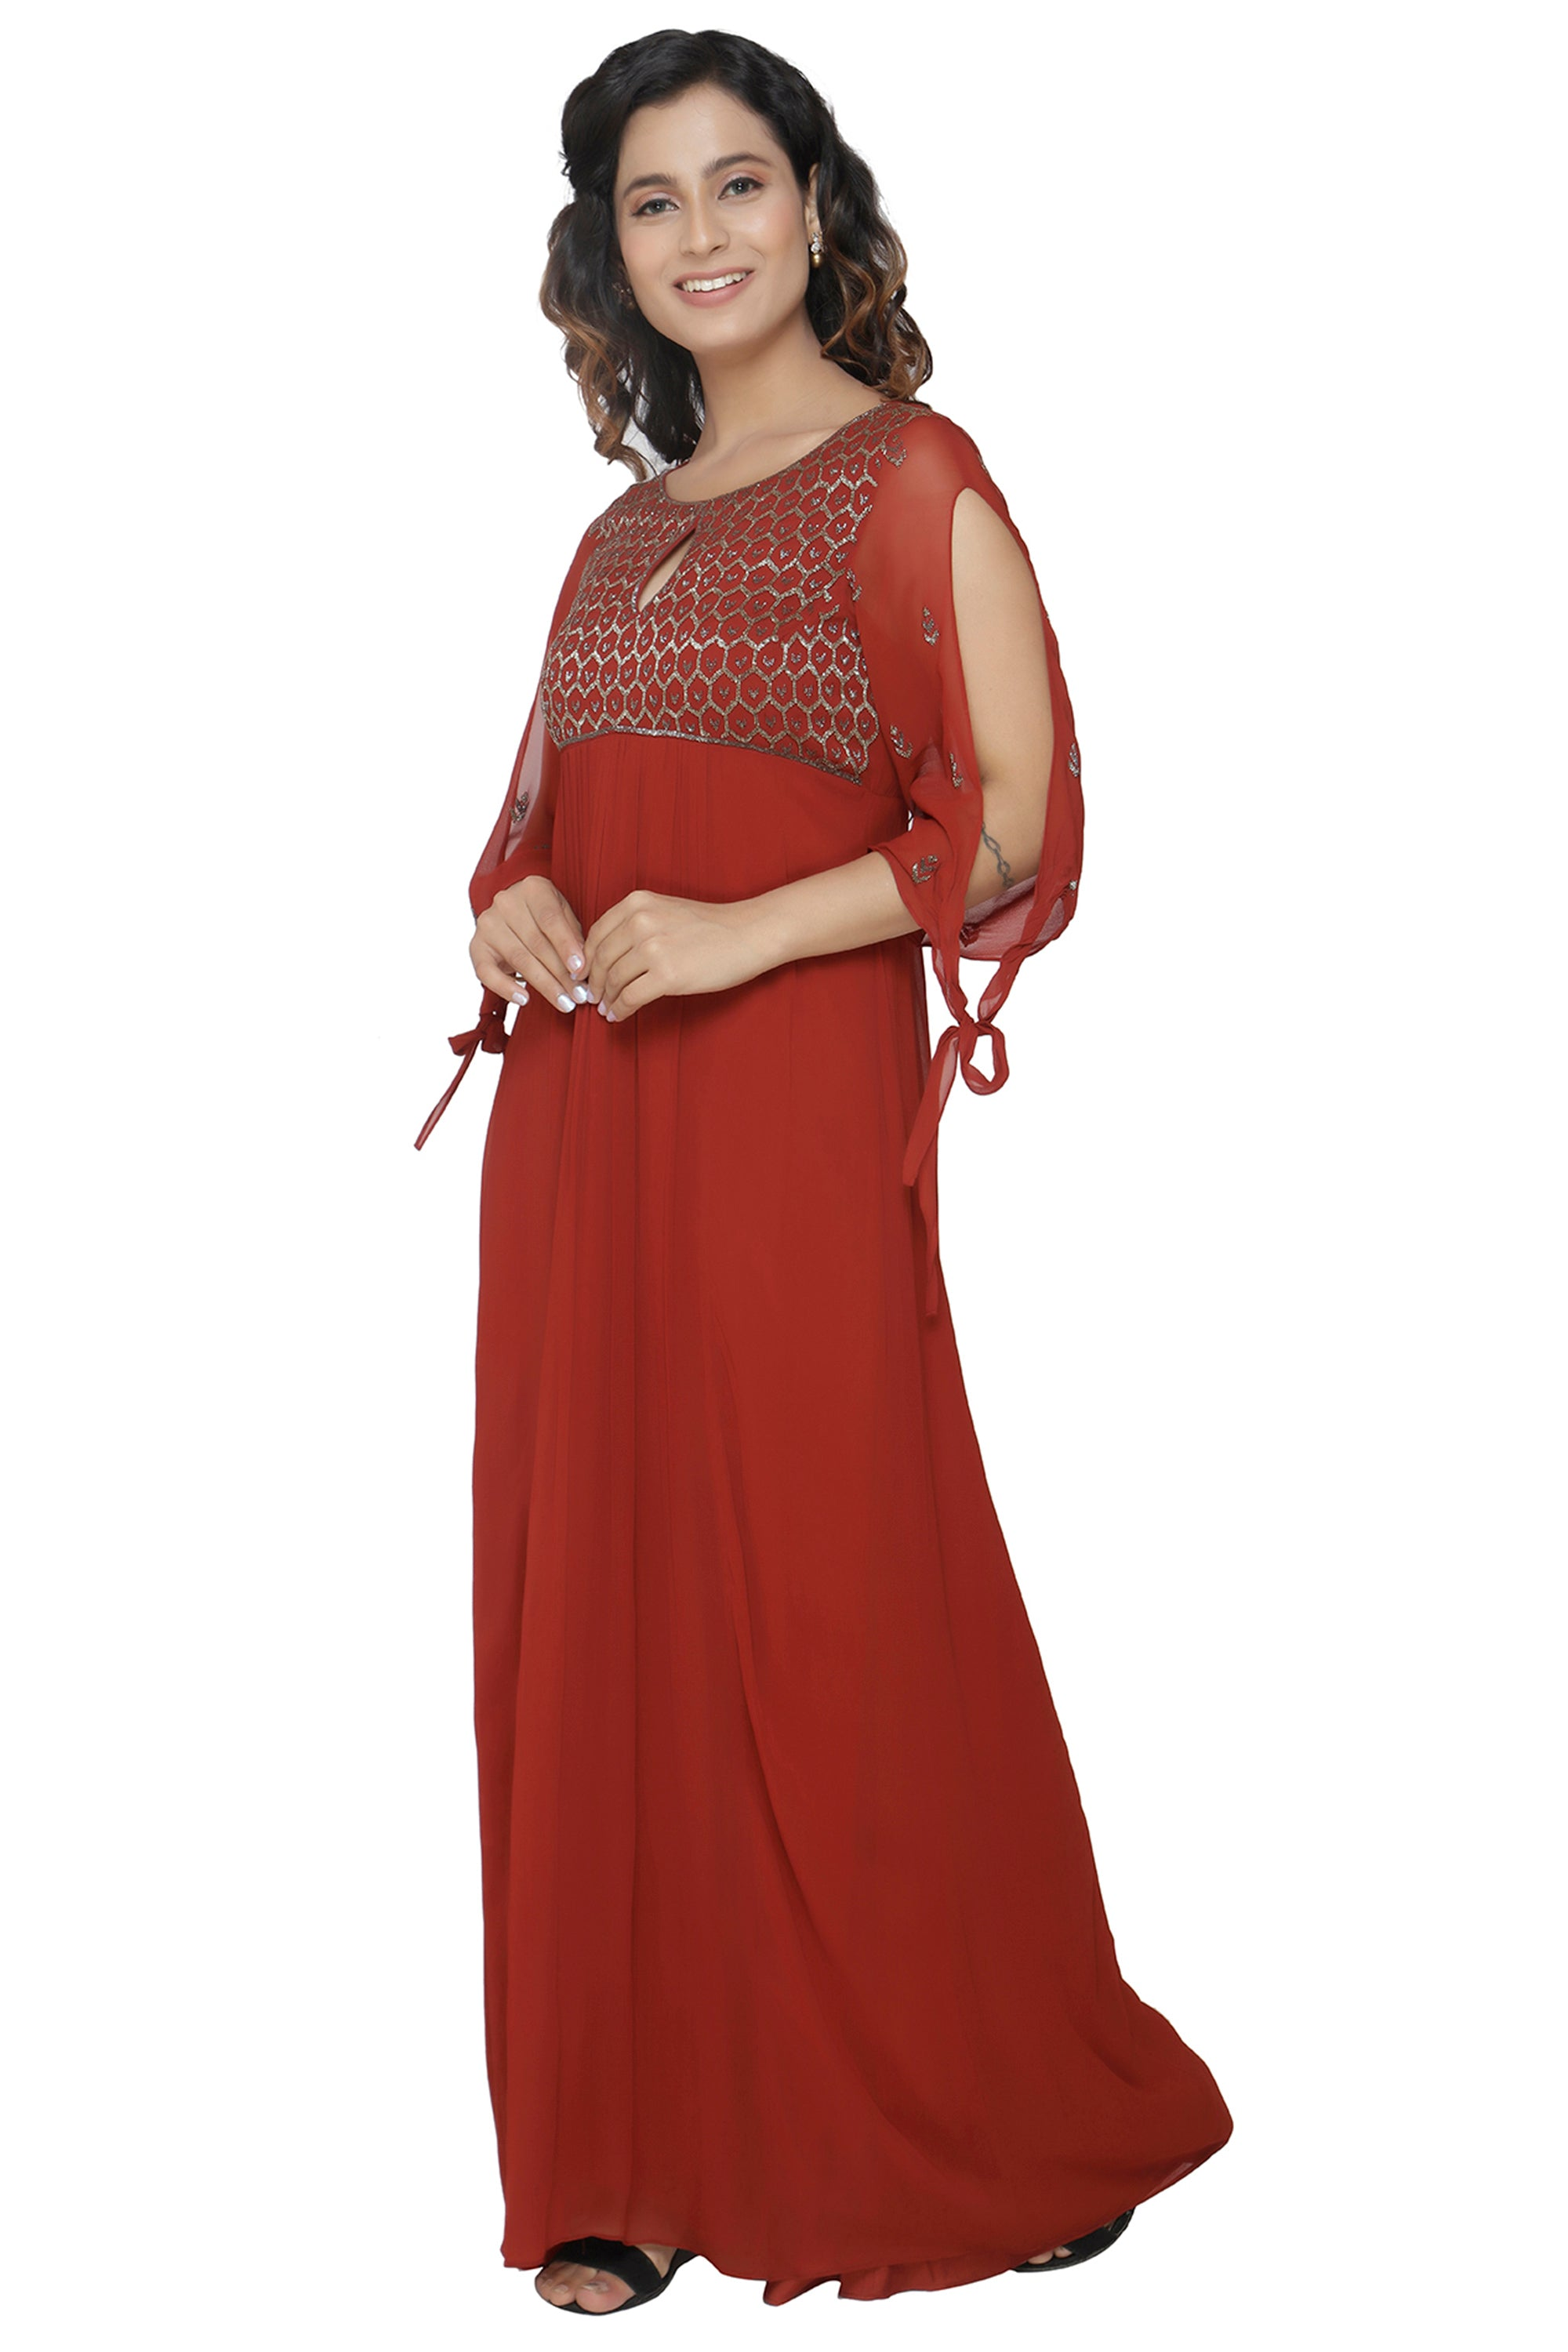 Maroon Gown With Flared Sleeves SIDE